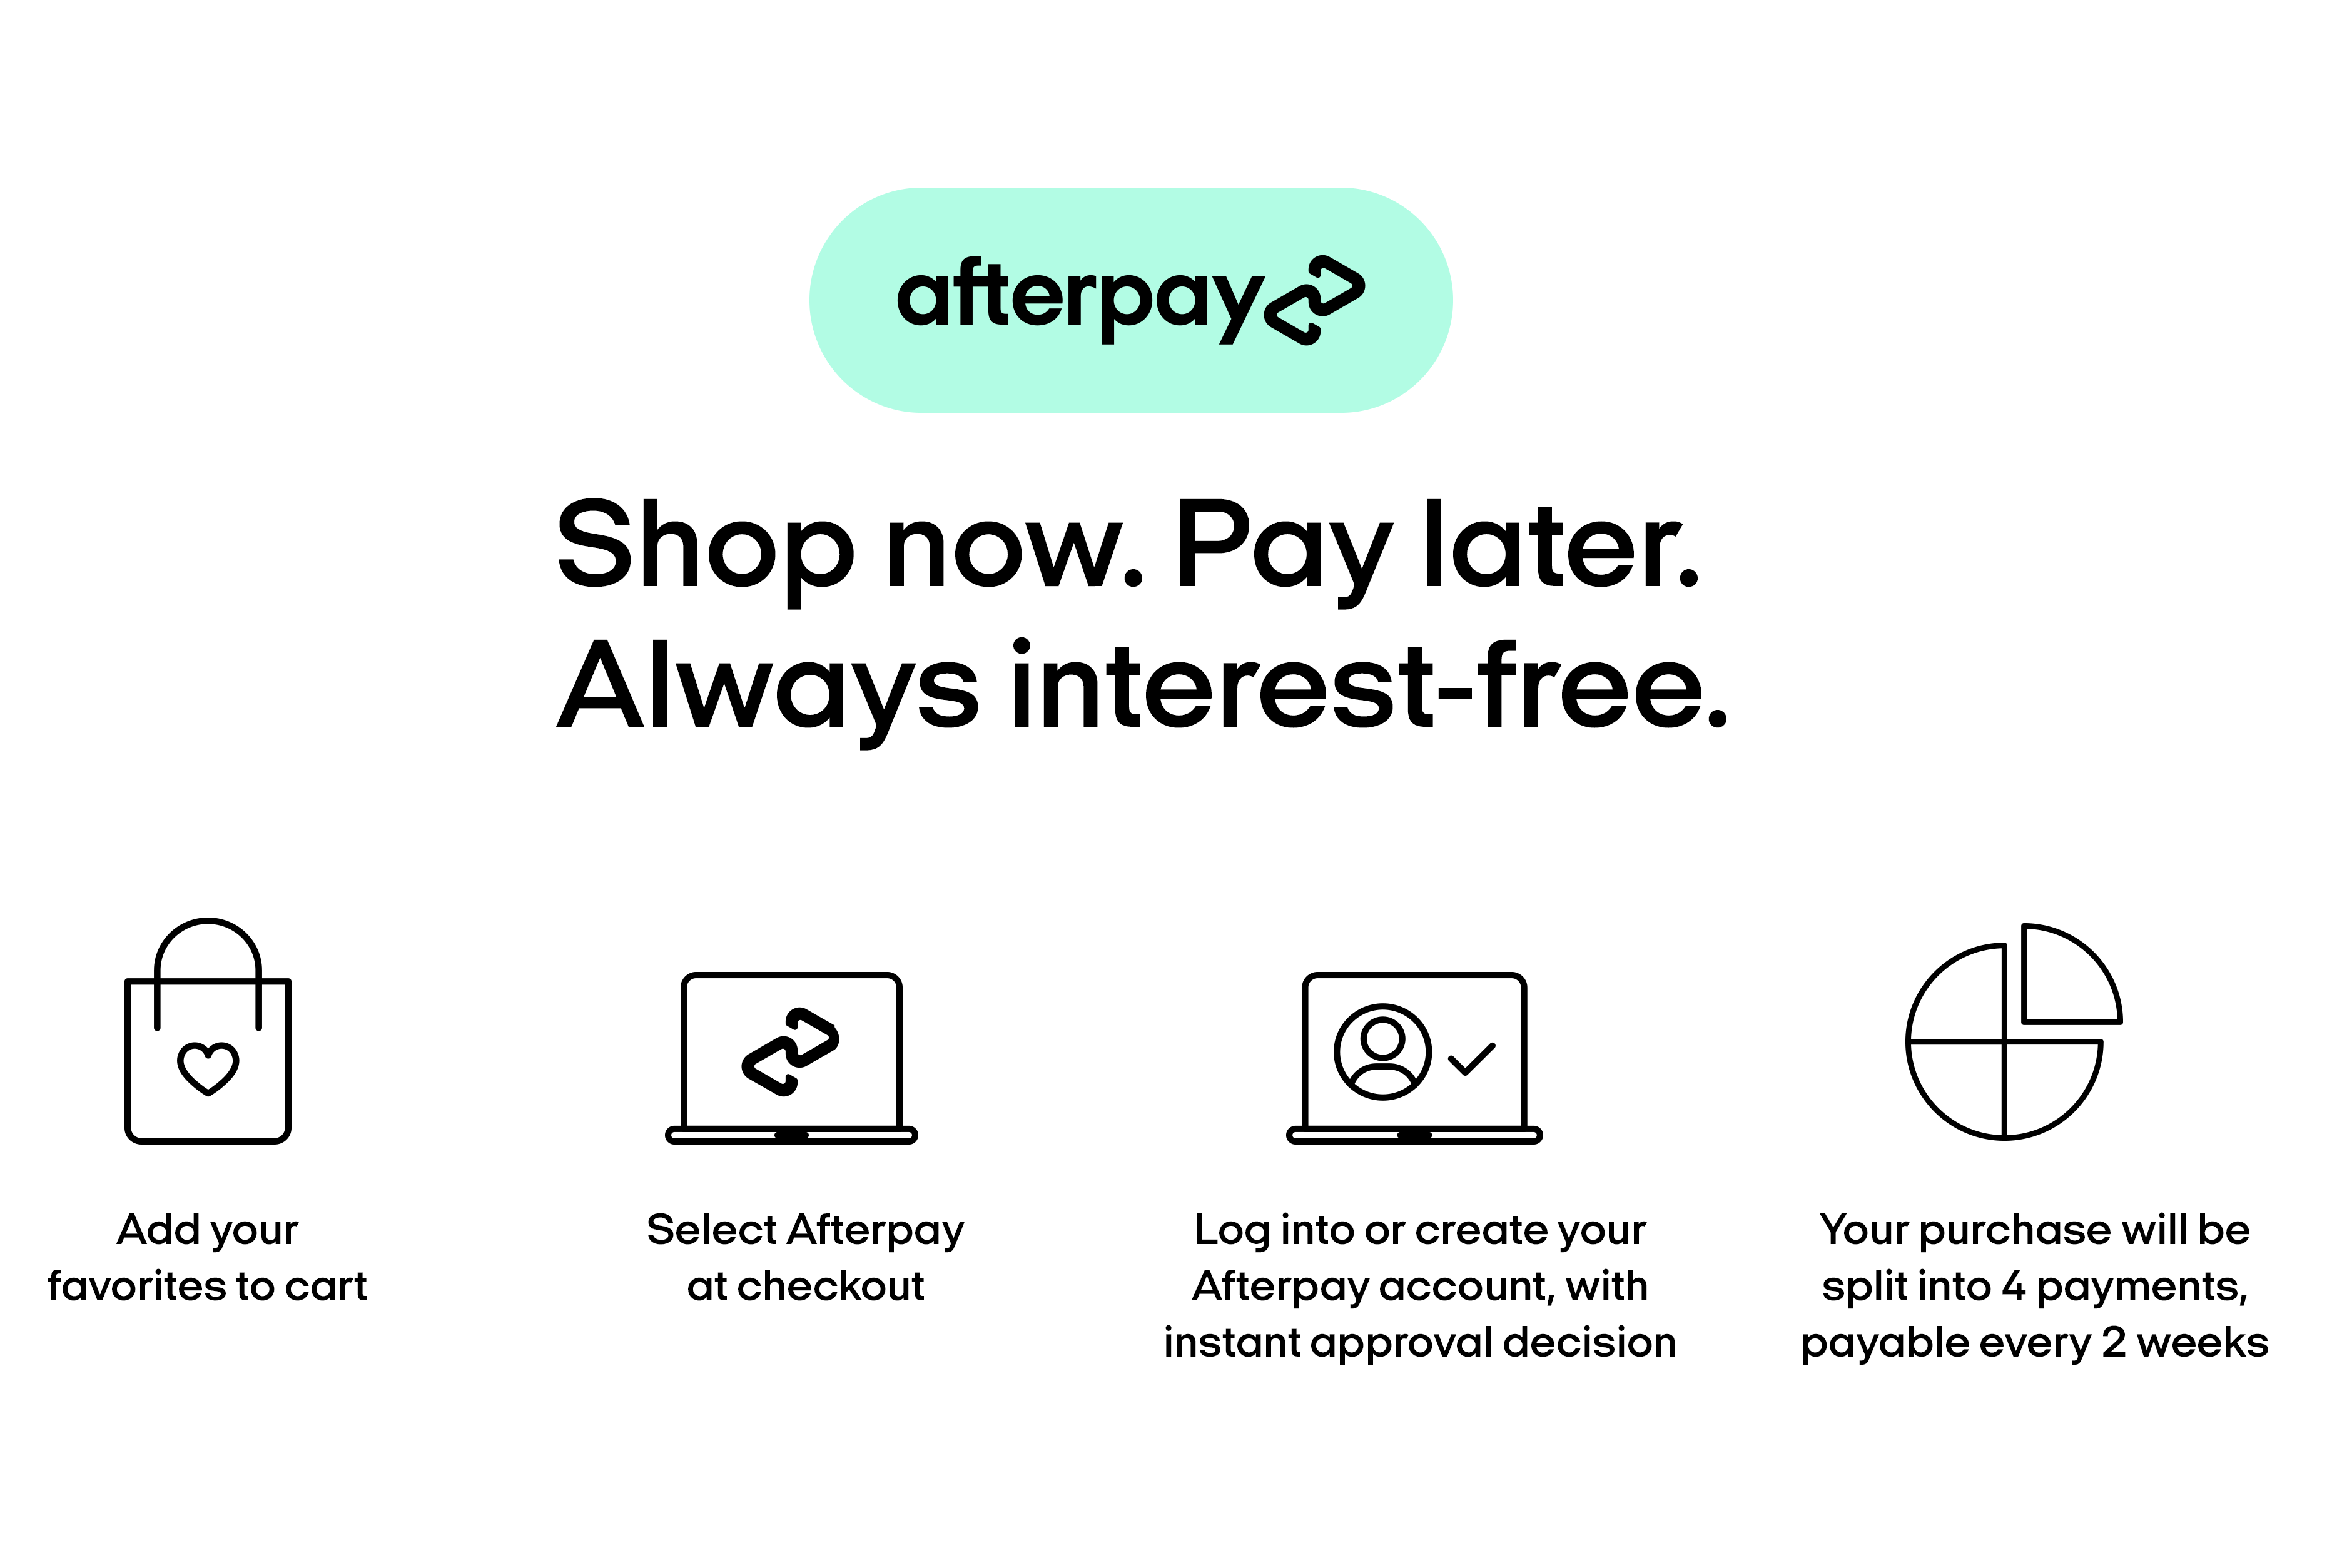 Afterpay Shop now. Pay Later. Always interest free. Select afterpay at checkout for instant approval decission. Your purchase will be split into four payments, payable every 2 weeks